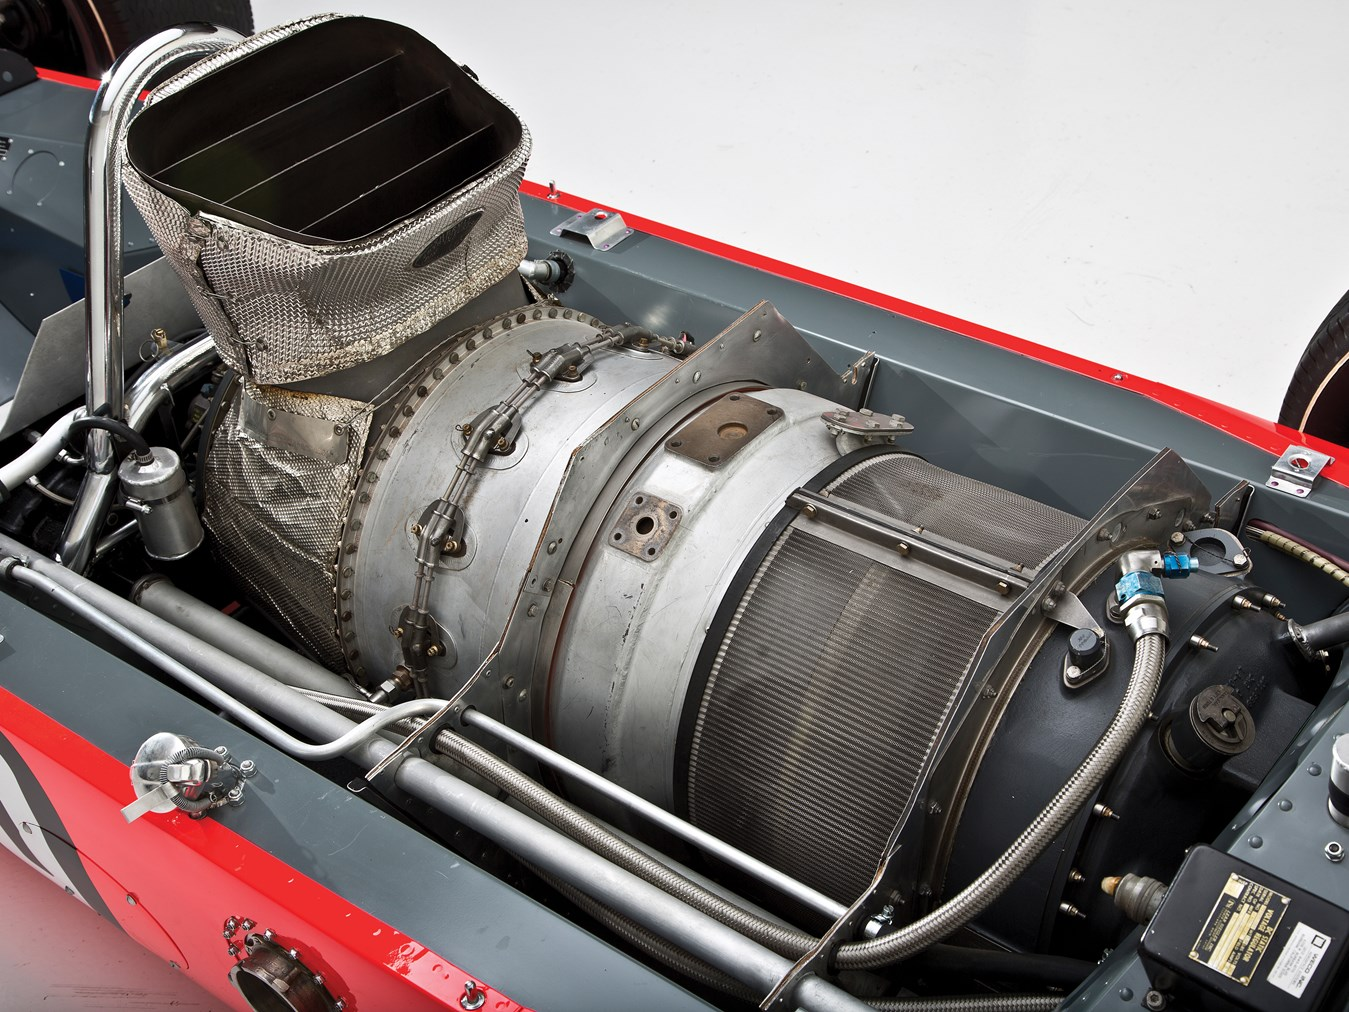 For the Lotus 1968 car the gas turbine was mounted behind the driver just like the petrol engine of a Formula 1 car.